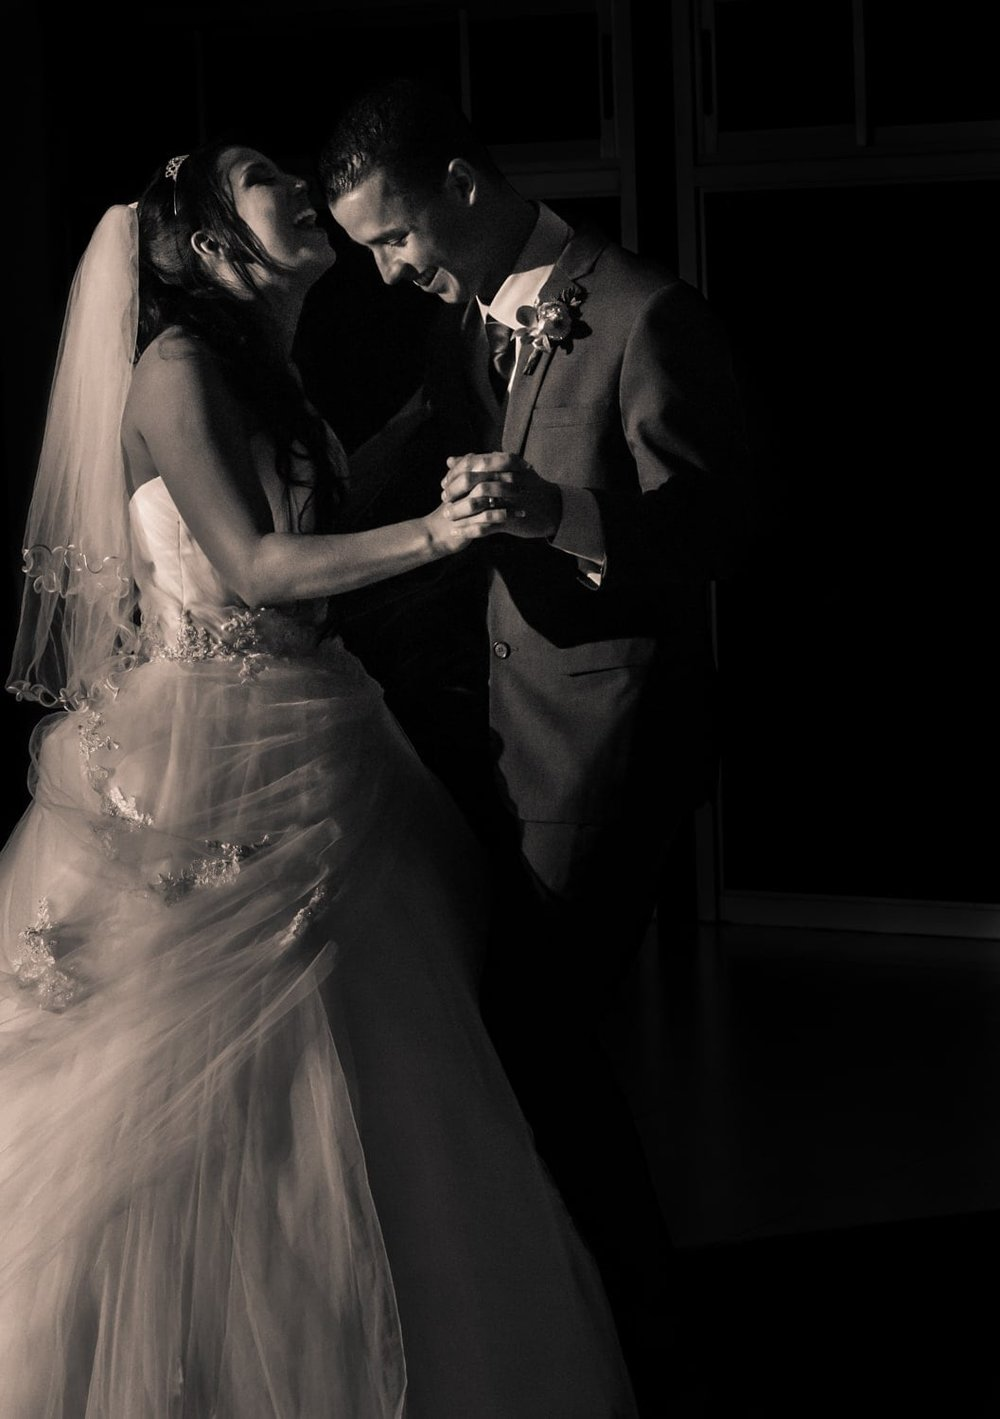 Just married couple enjoy their first dance.